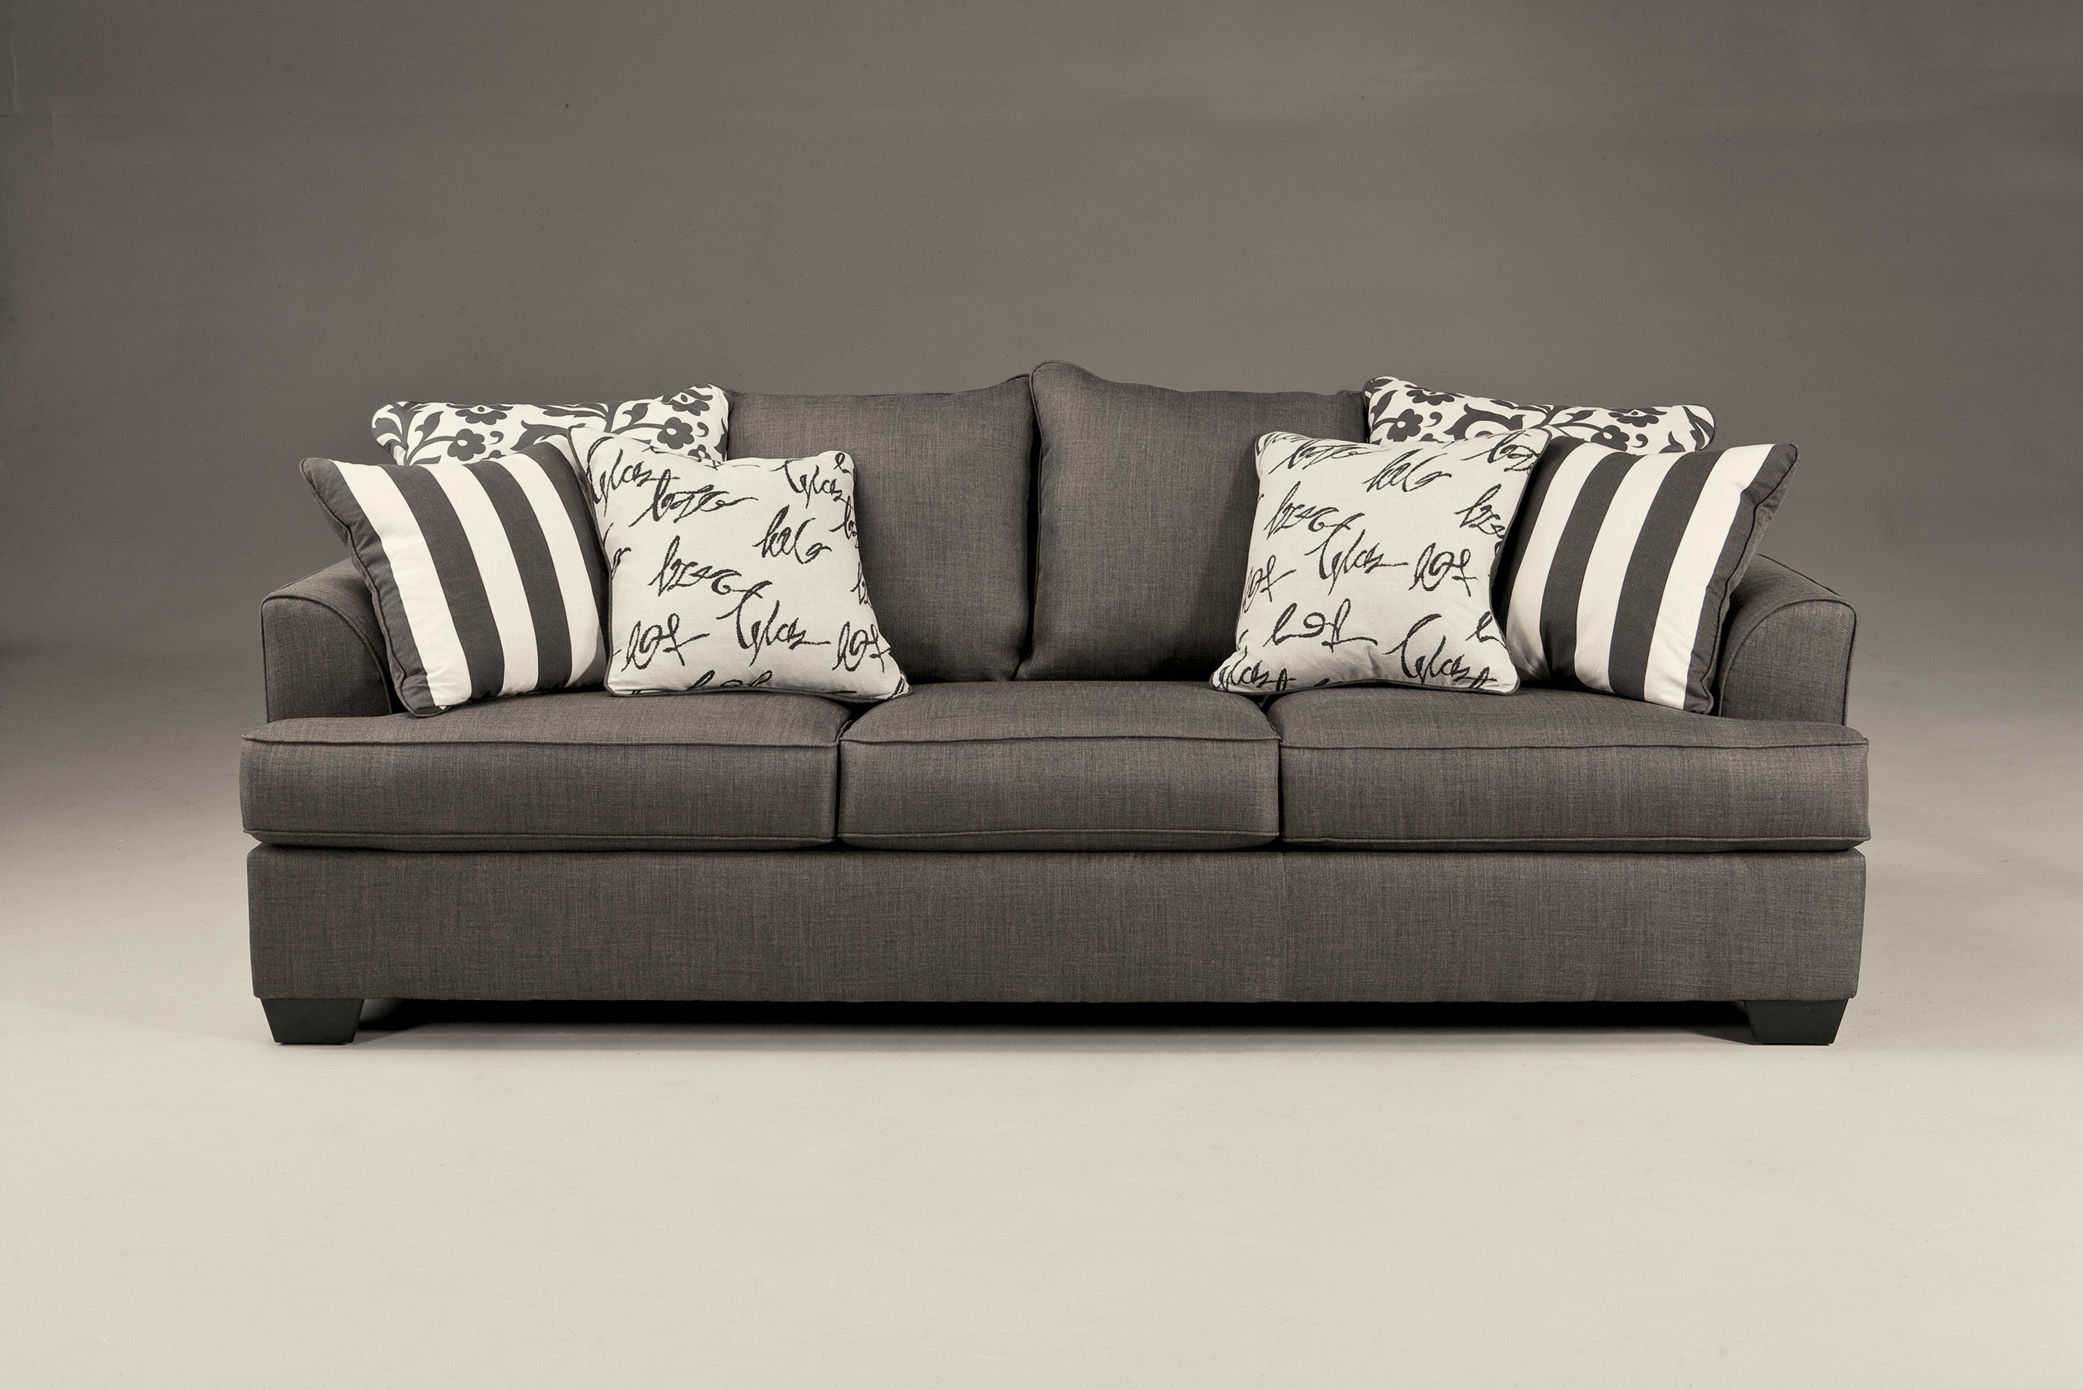 Ashley Furniture Levon Charcoal Sofa The Classy Home